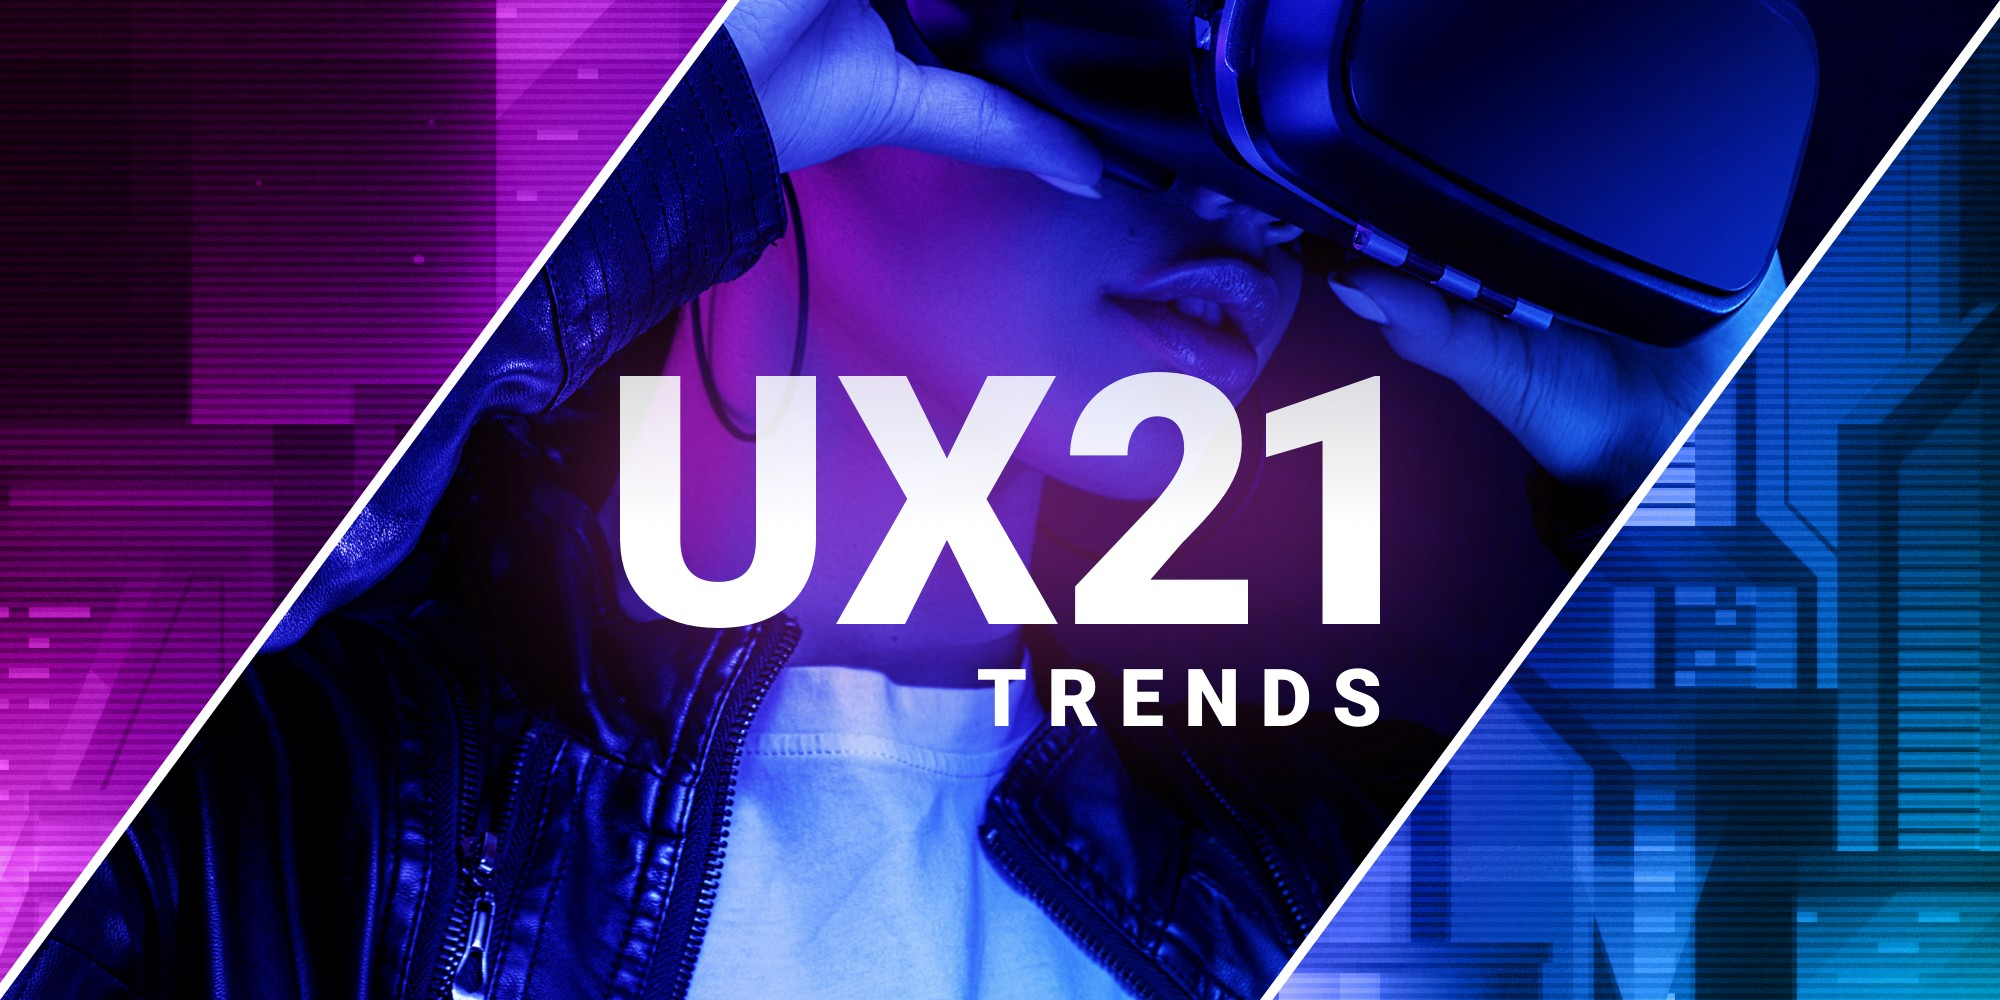 A cyberpunk image containing a futuristic backdrop, a girl wearing a VR headset, and overlaying text that reads UX21 trends